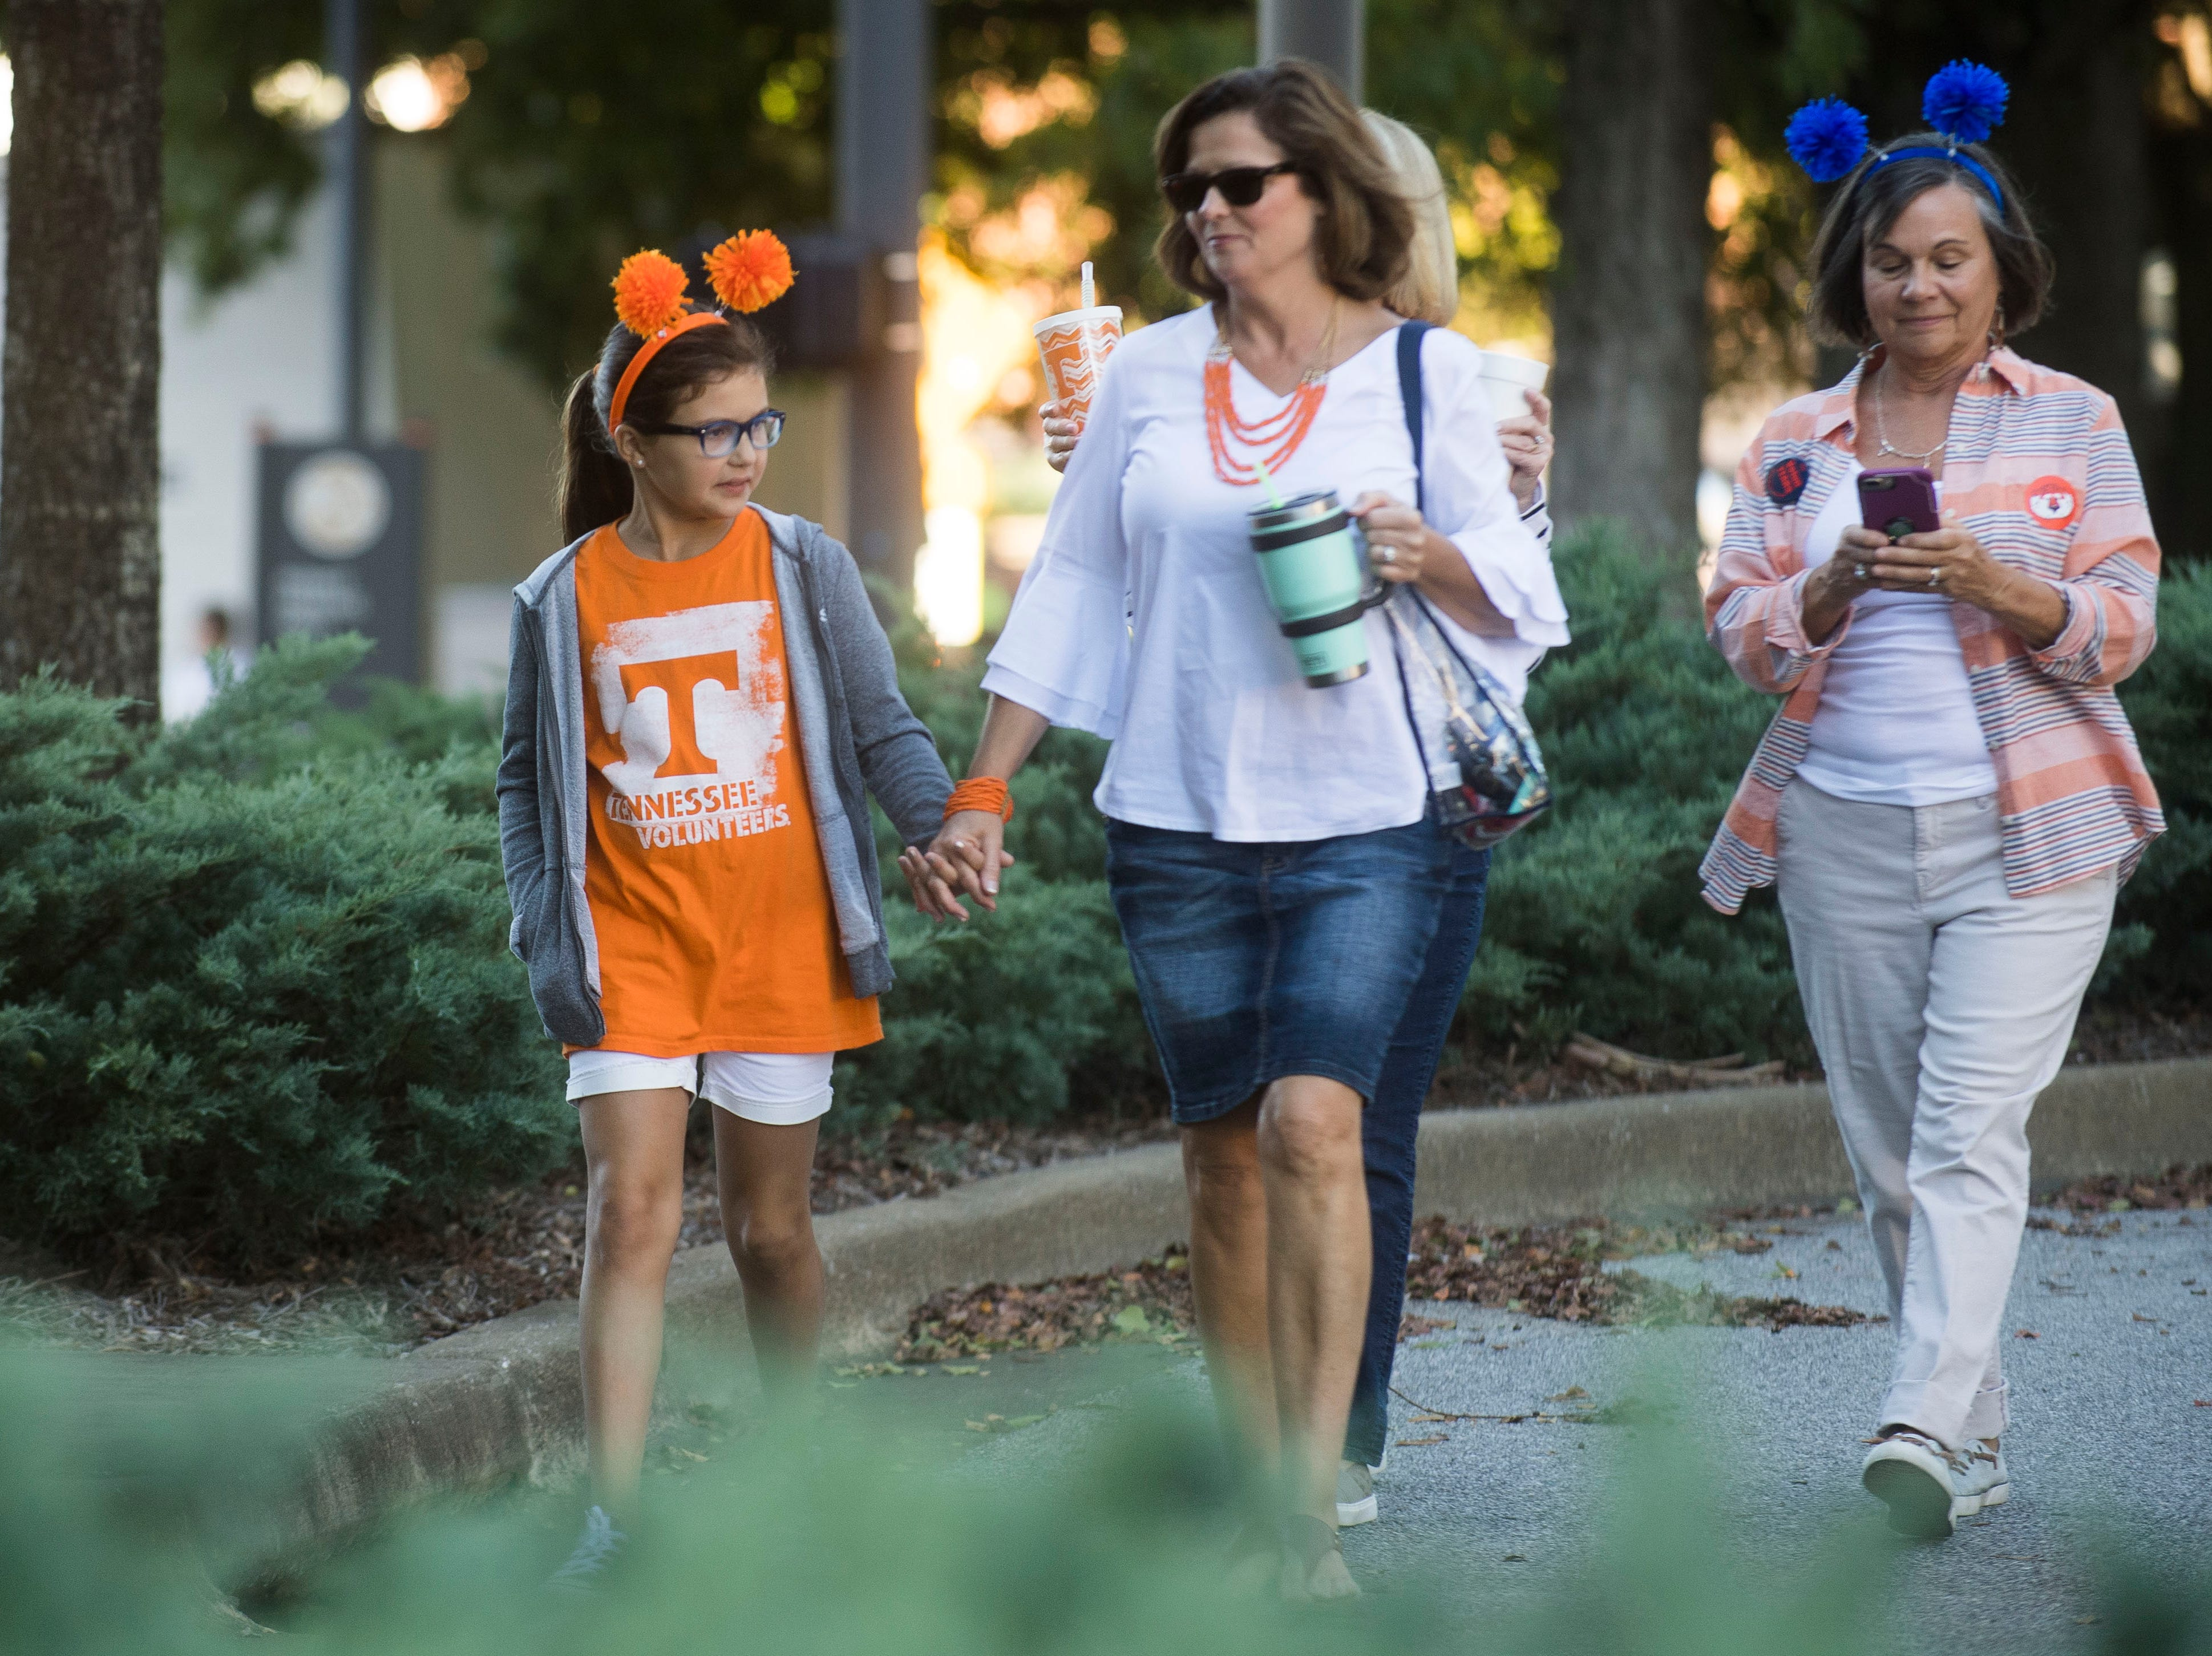 At left Gracie Gobble walks with Cindy Gobble, both of Lawrenceburg, Tenn. before a game between Tennessee and Auburn at Jordan-Hare Stadium in Auburn, Ala. Saturday, Oct. 13, 2018.